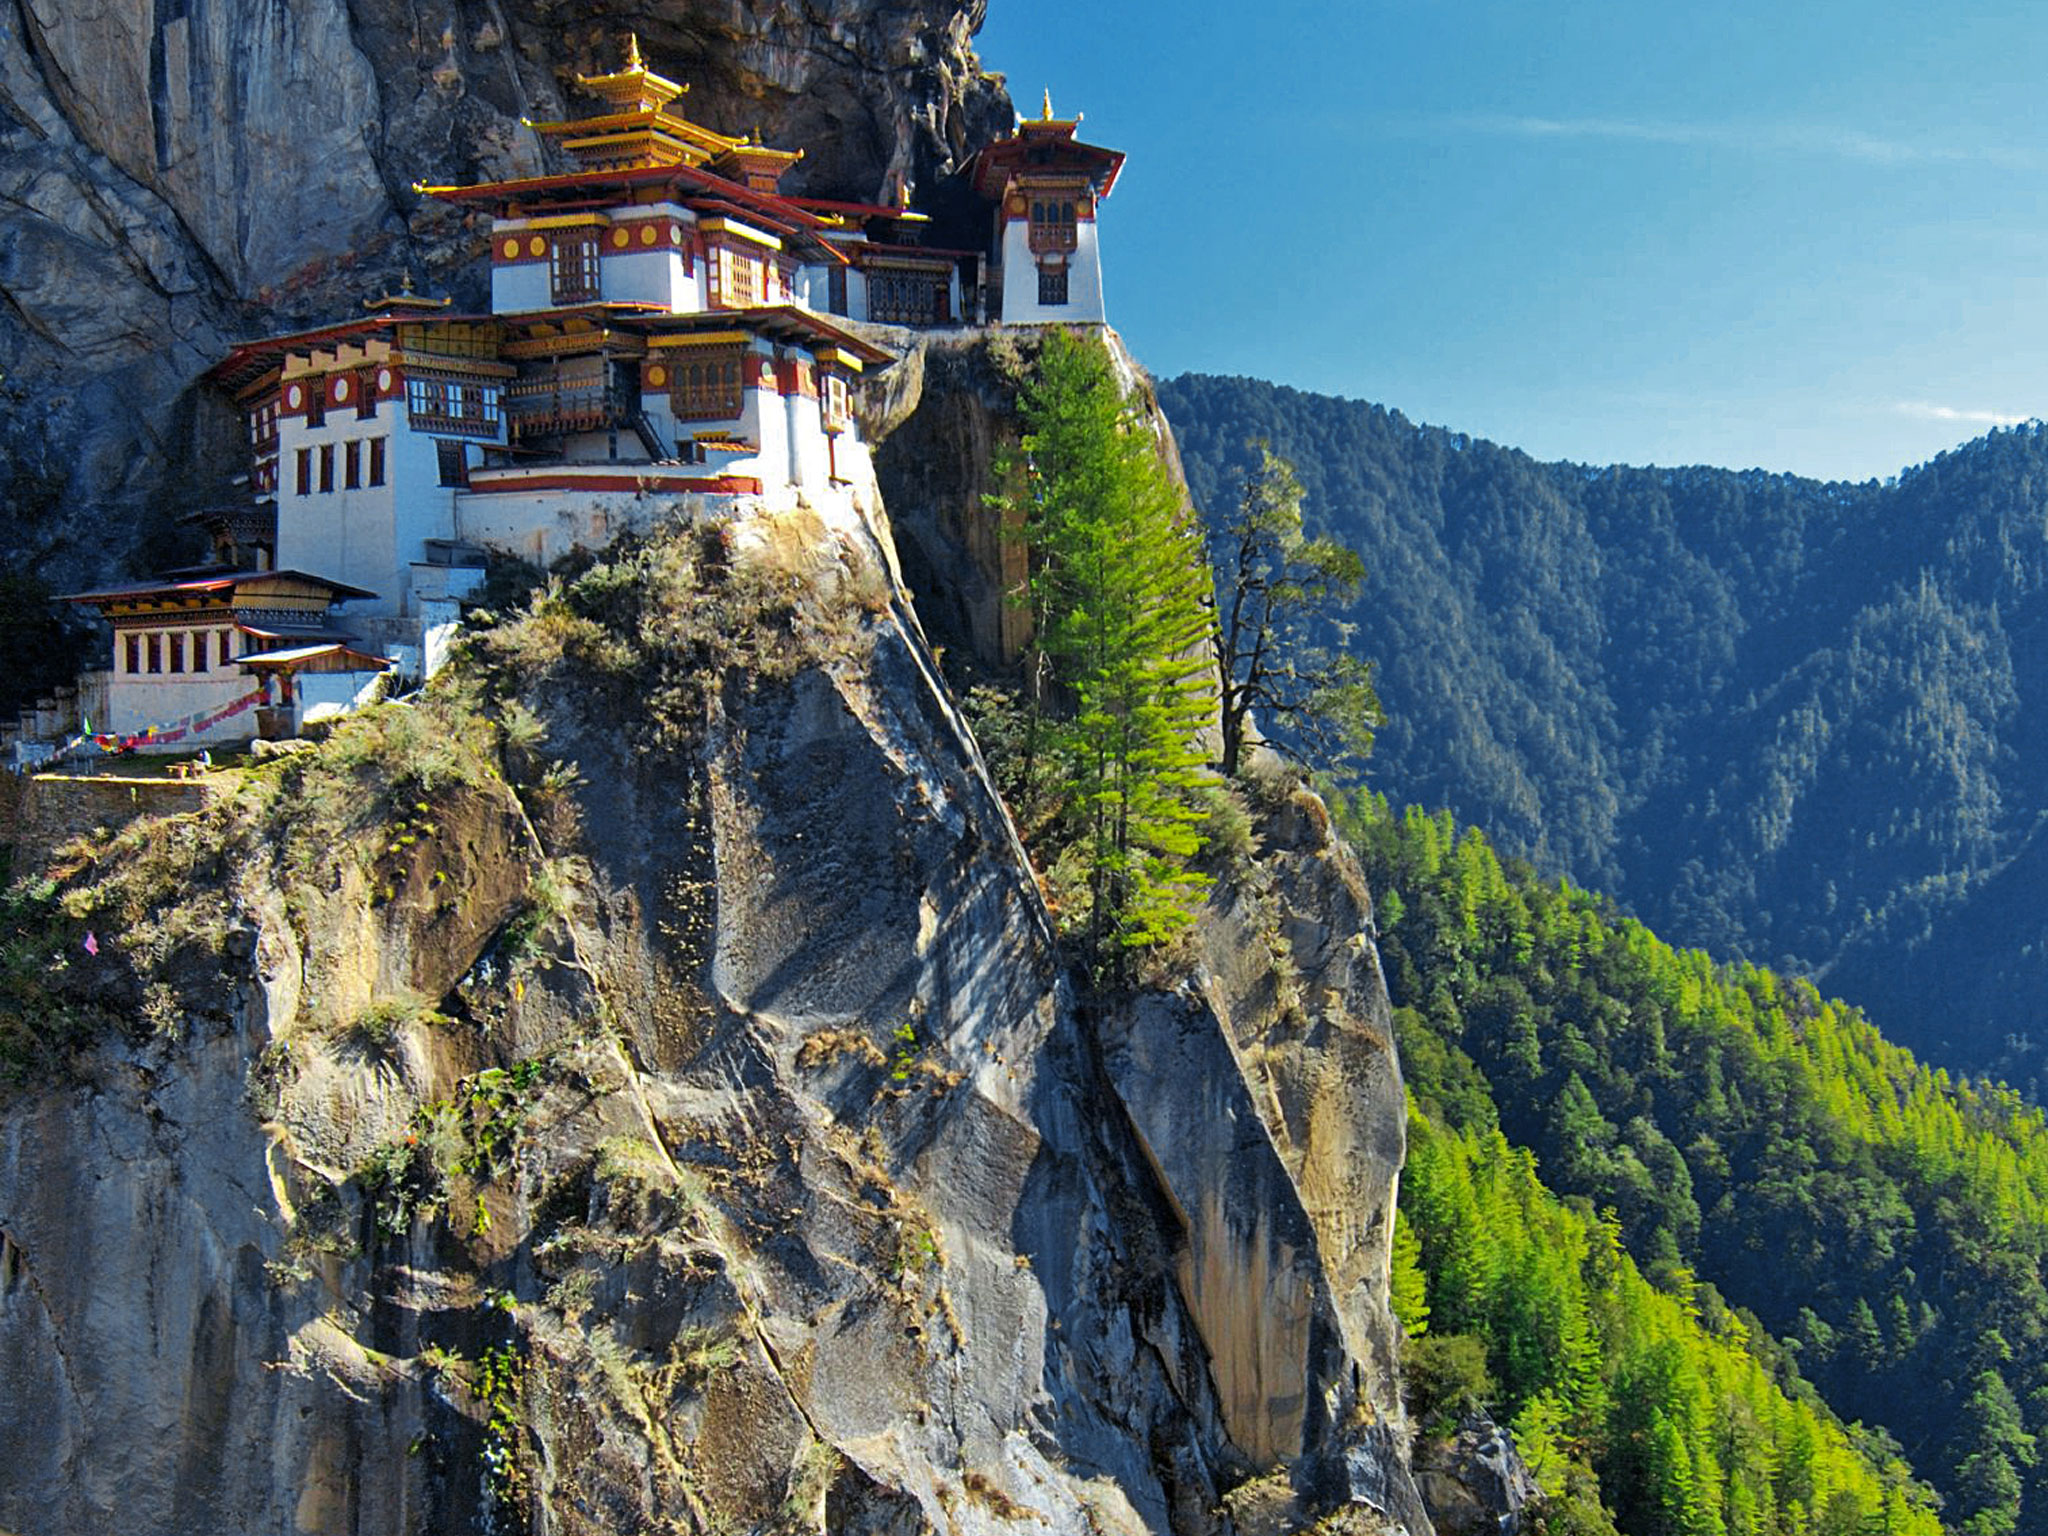 Happiness Holiday, Bhutan, Asia, Monastery on cliffs